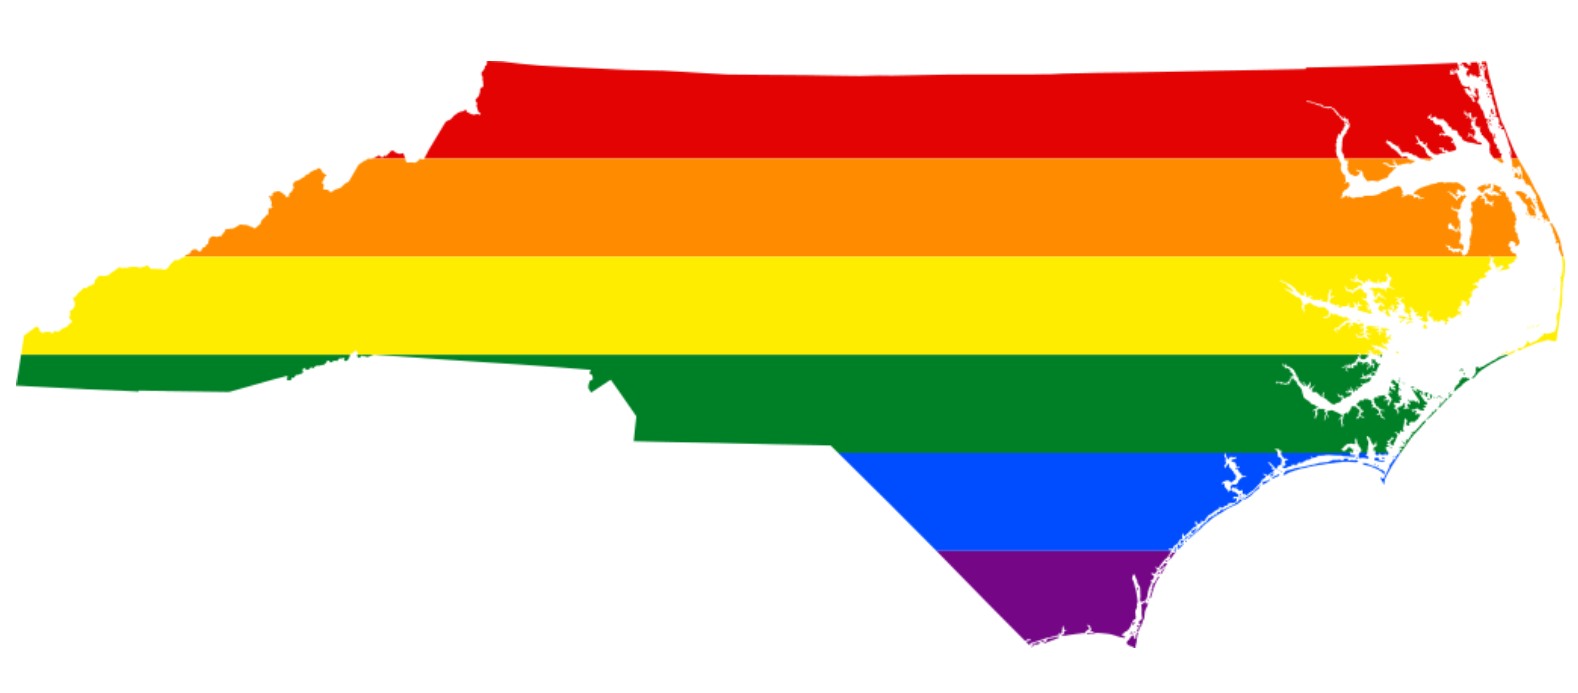 North Carolina's Anti-LGBT Law is a Cautionary Tale for Virginia Republicans